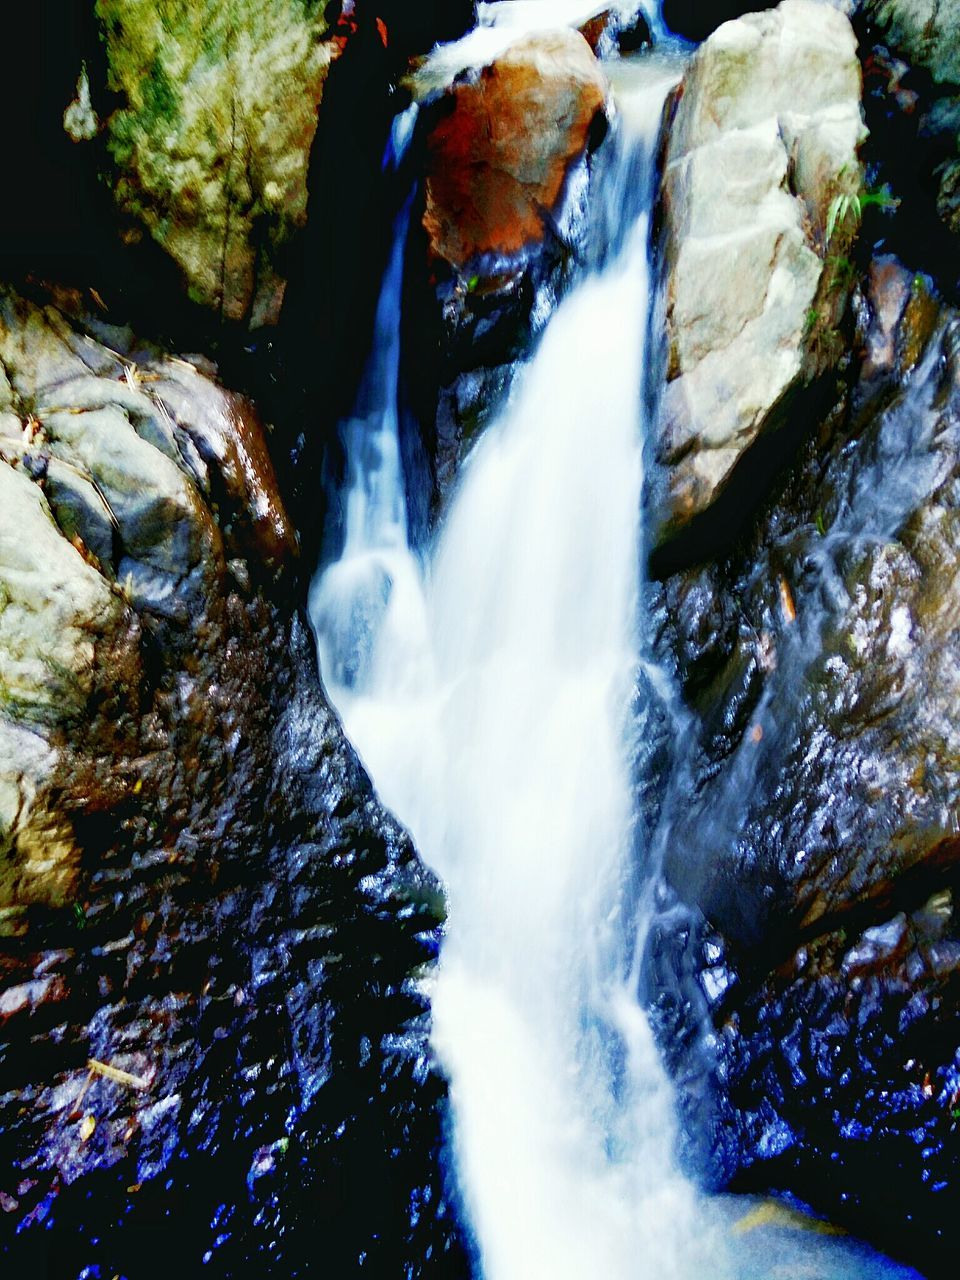 waterfall, motion, water, flowing water, long exposure, nature, river, blurred motion, beauty in nature, rock - object, rapid, outdoors, no people, scenics, day, tranquil scene, tranquility, purity, power in nature, tree